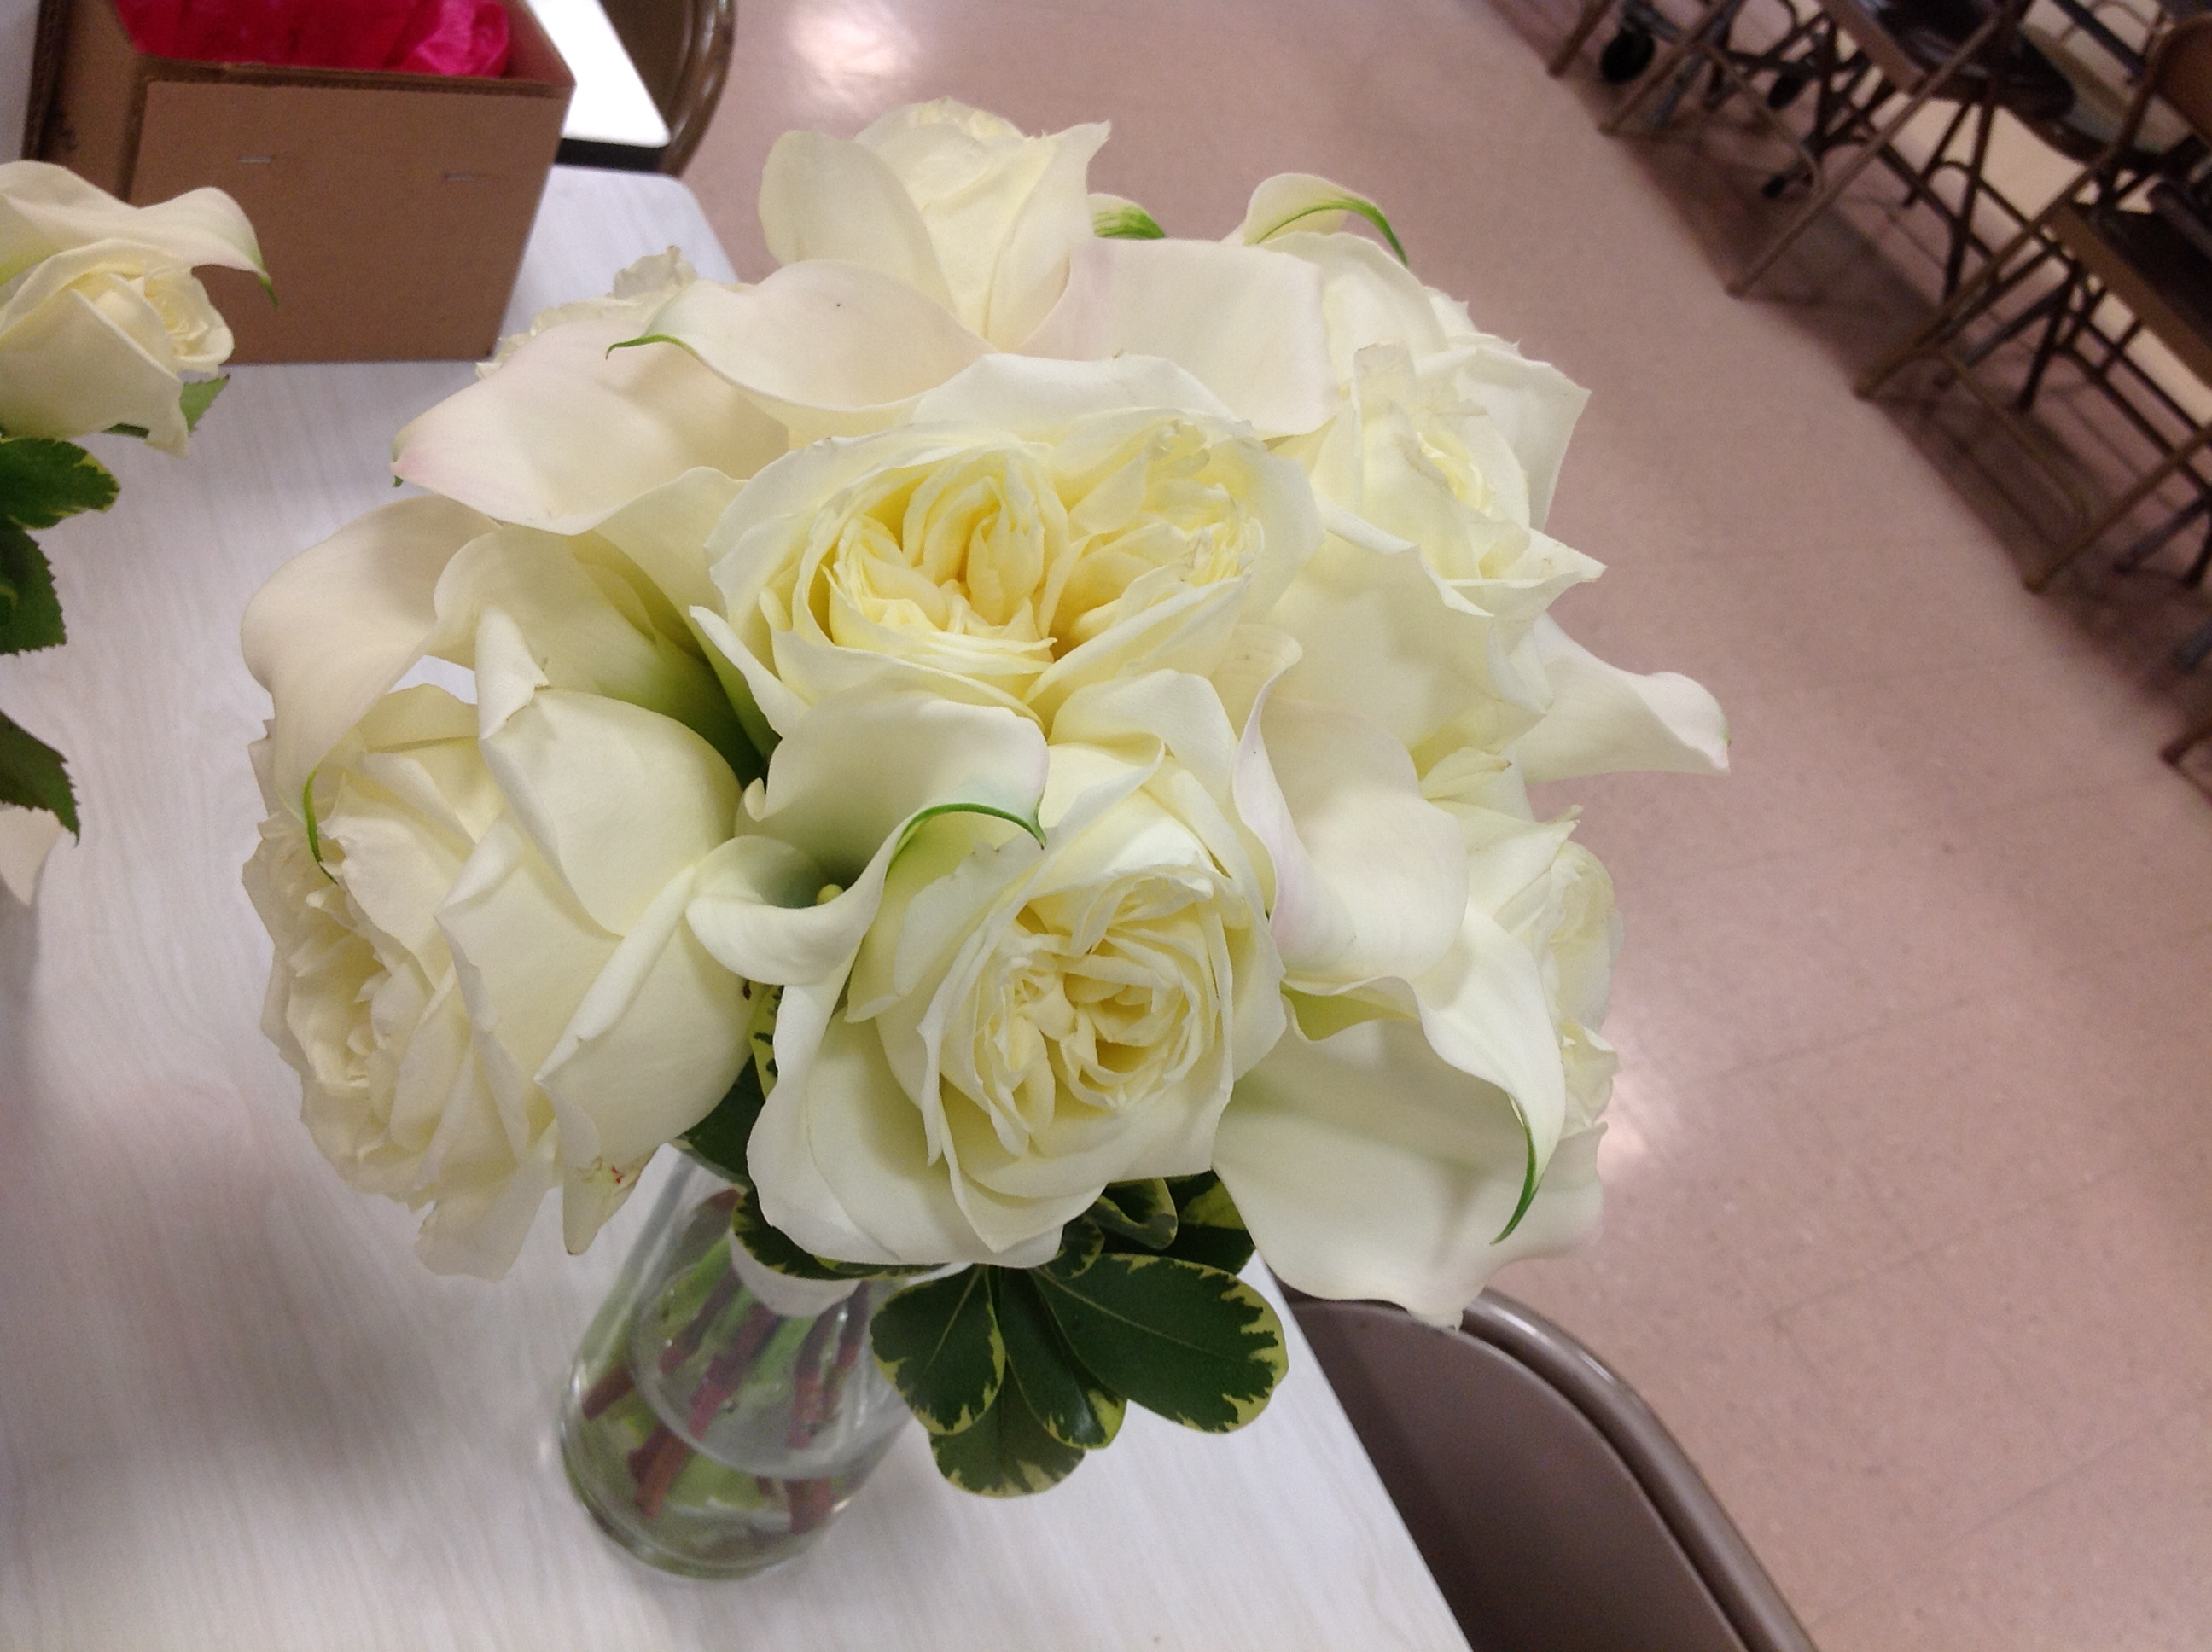 West allis wedding flowers your local florist with for Bouquet of flowers for weddings